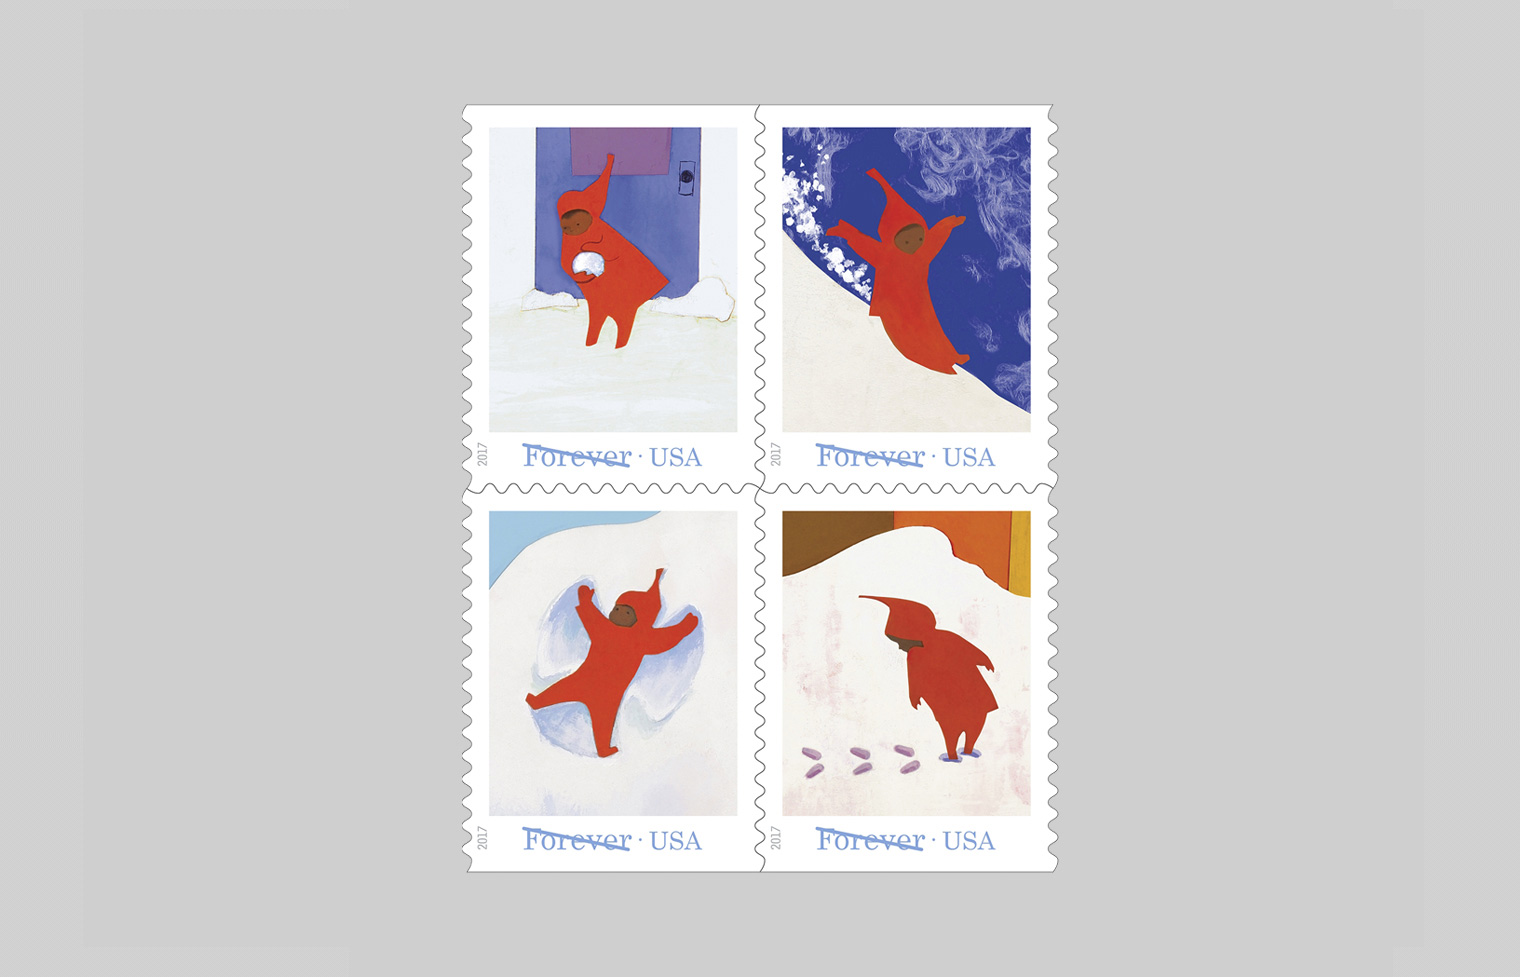 The Snowy Day Stamp